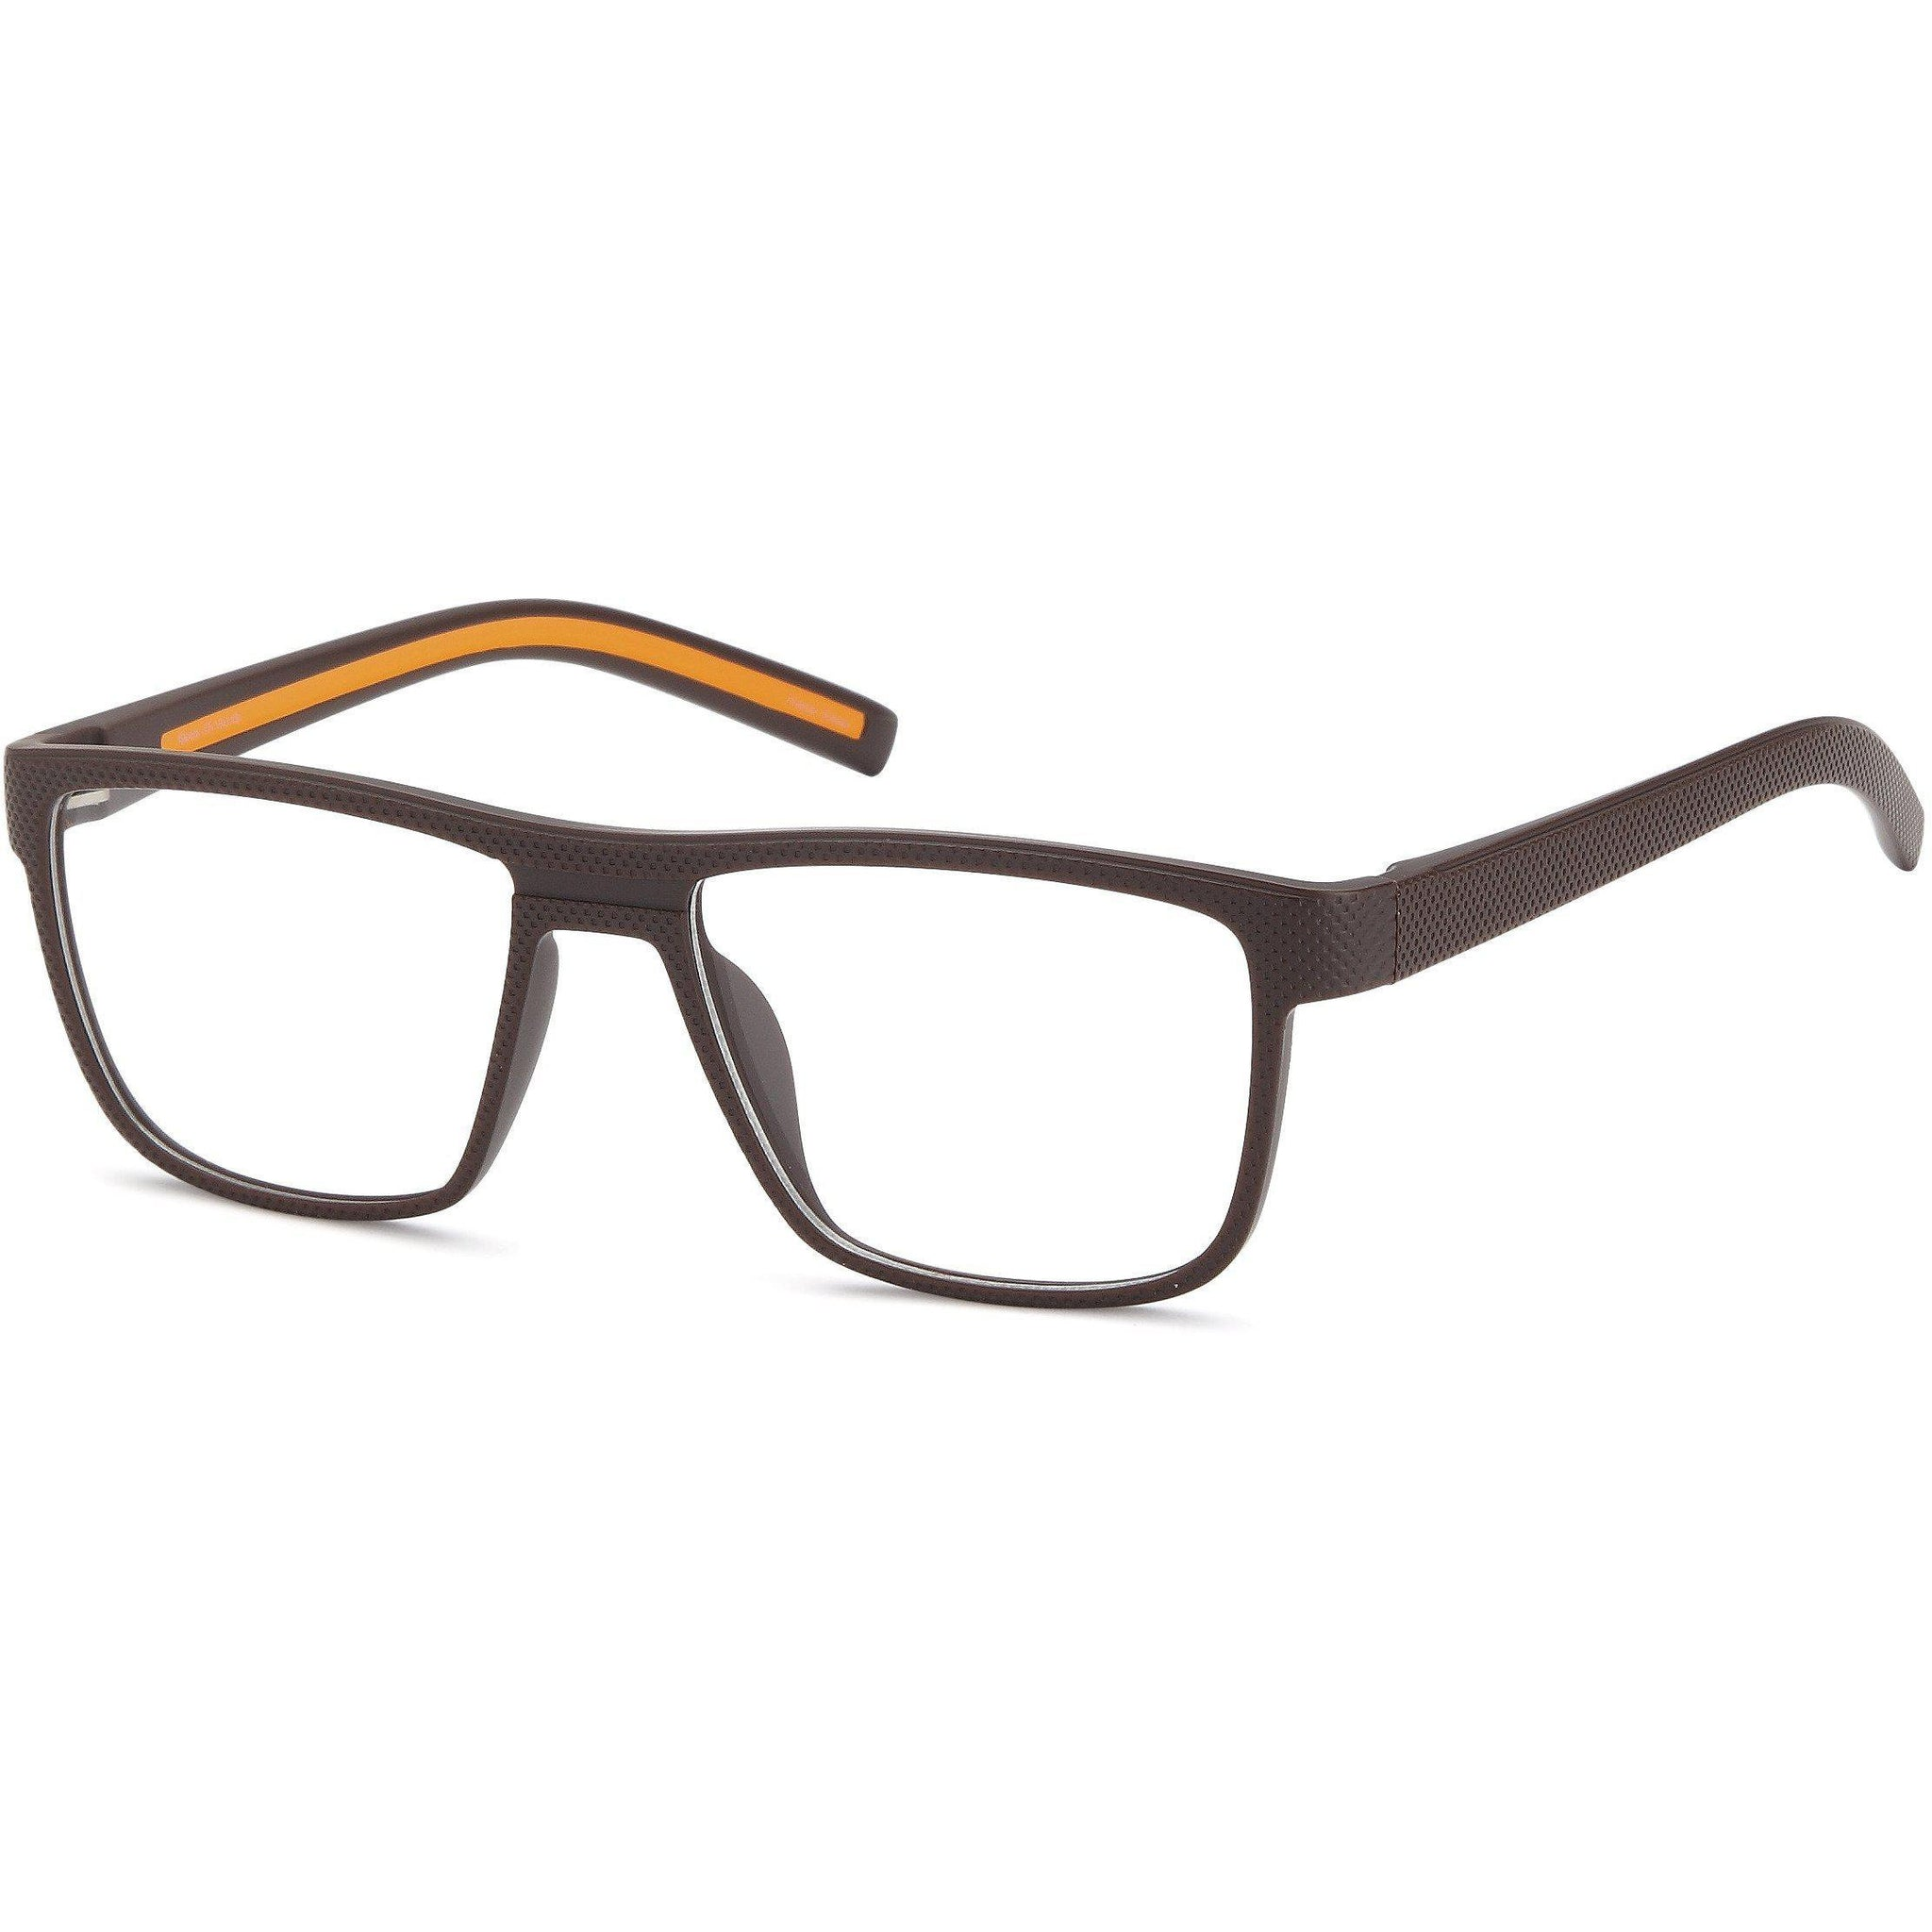 The Icons Prescription Glasses MASON Eyeglasses Frame